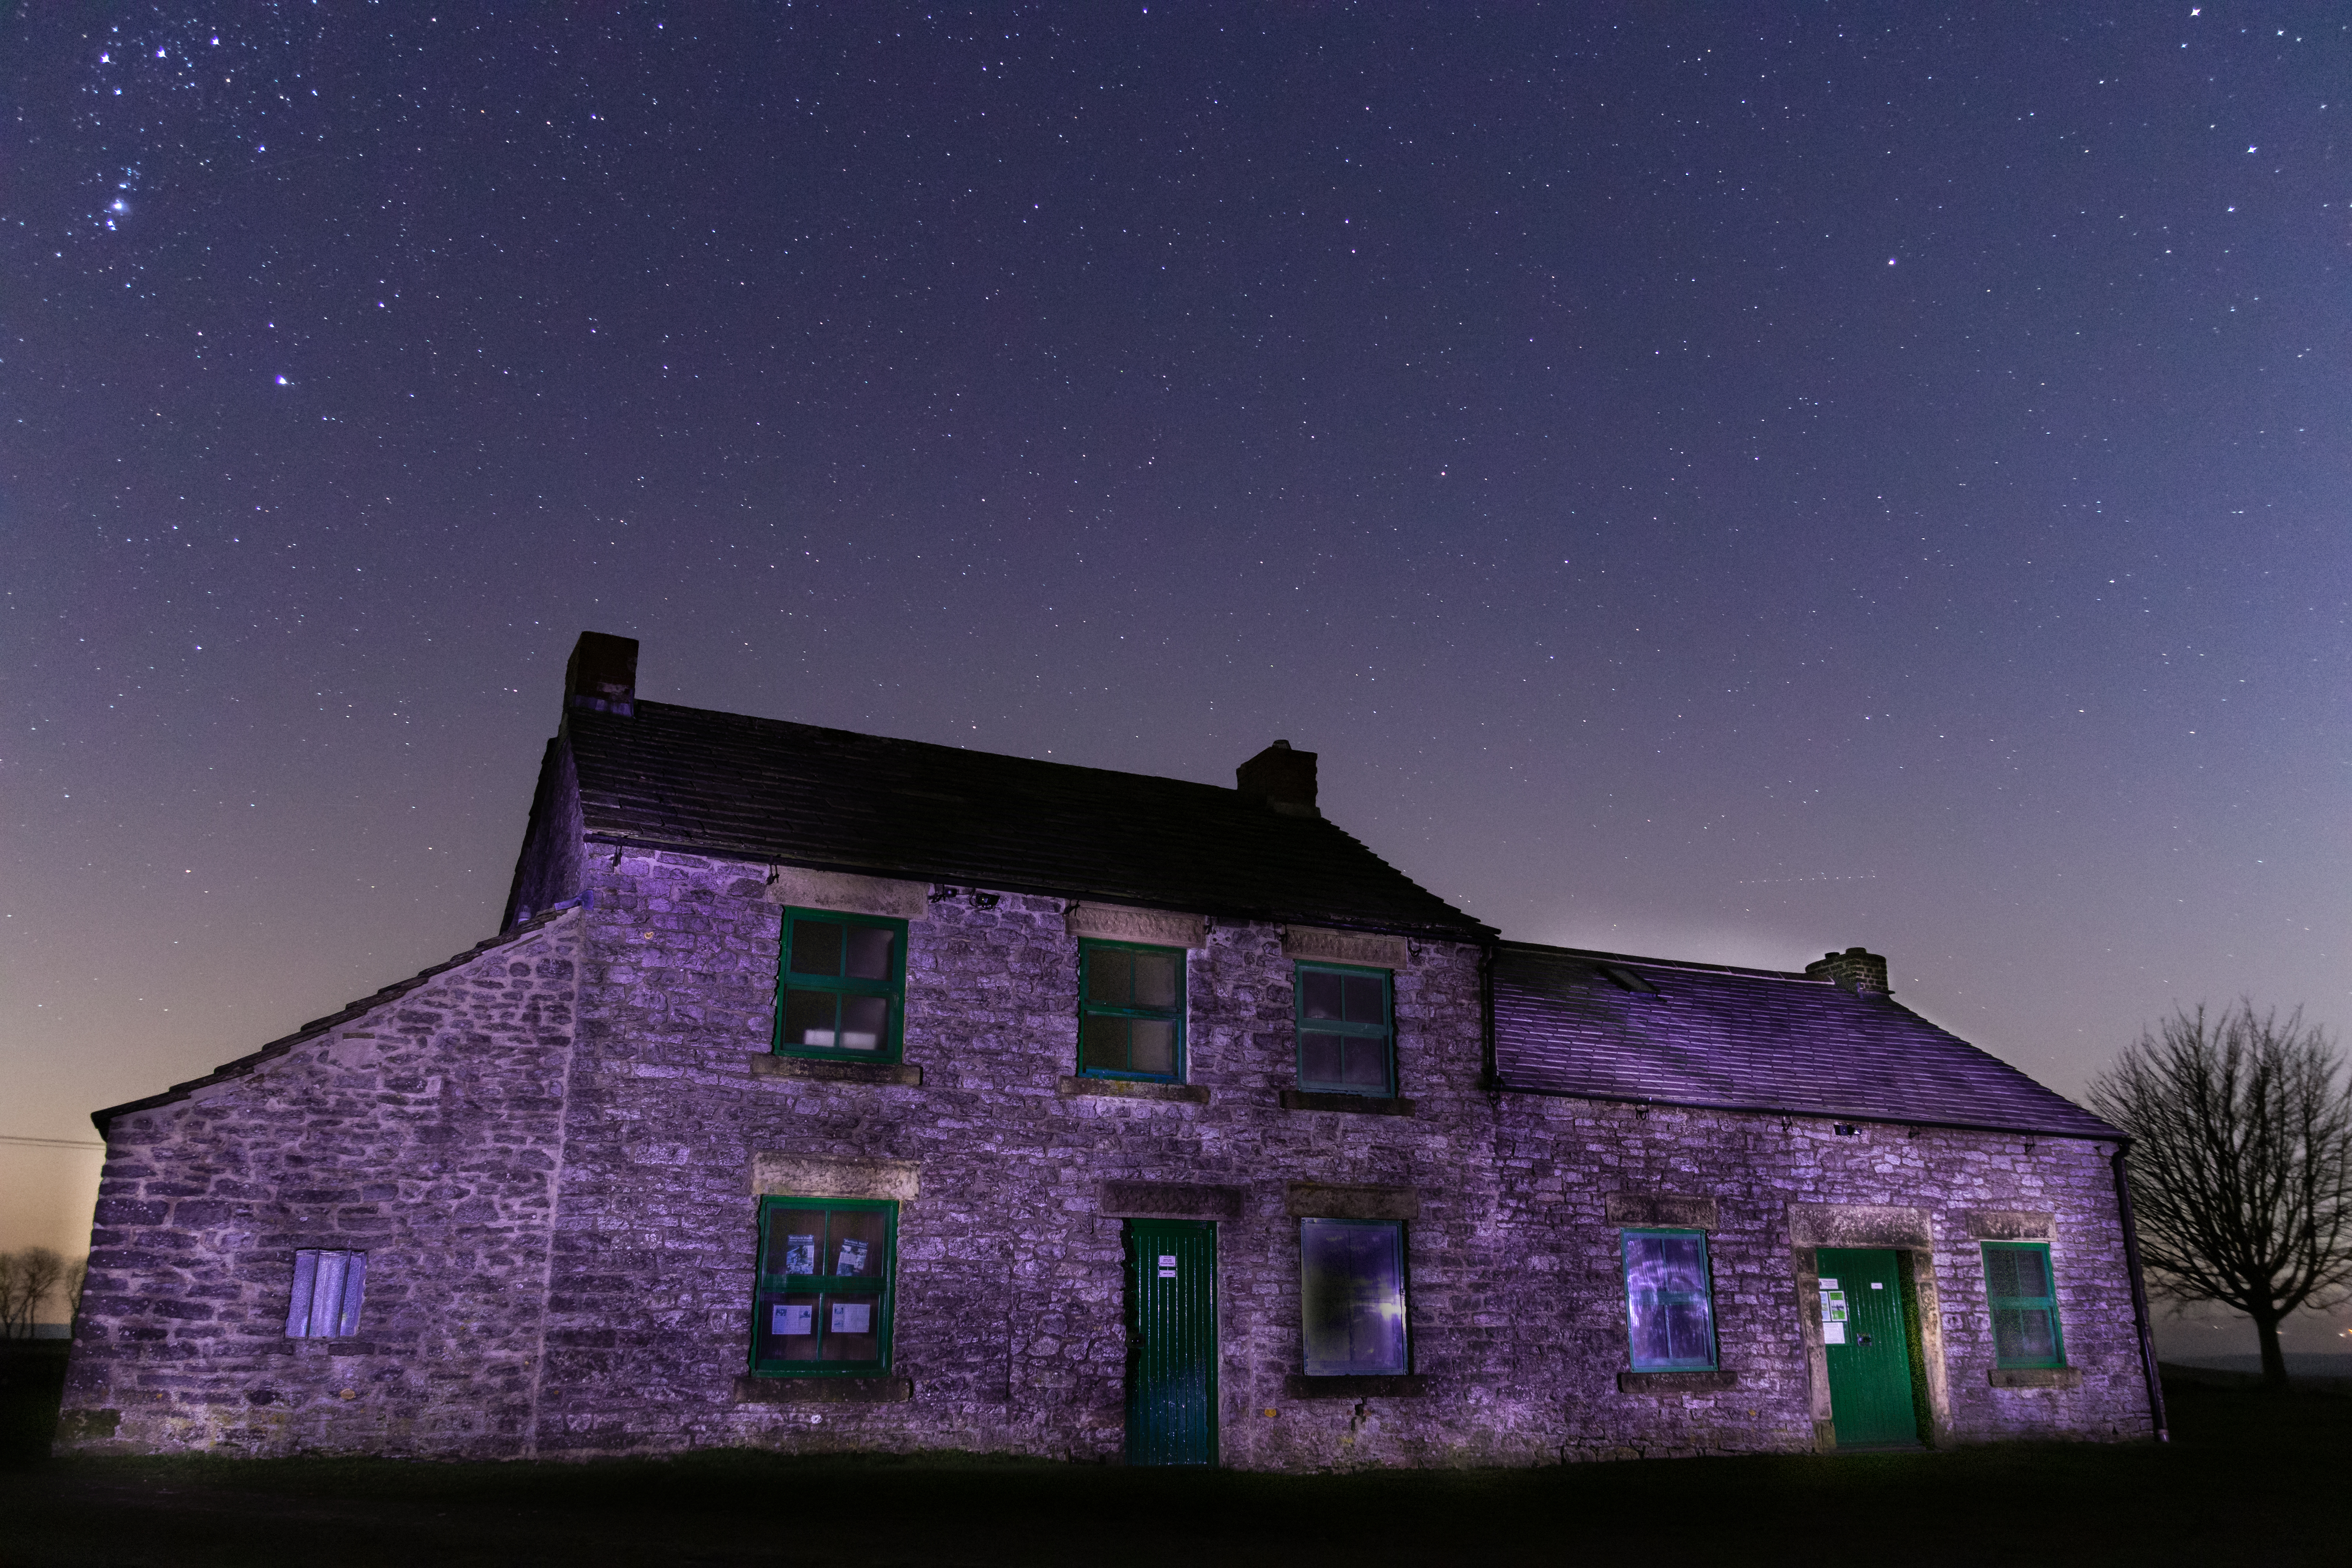 Magpie Lead Mine, Star sky and light painting.